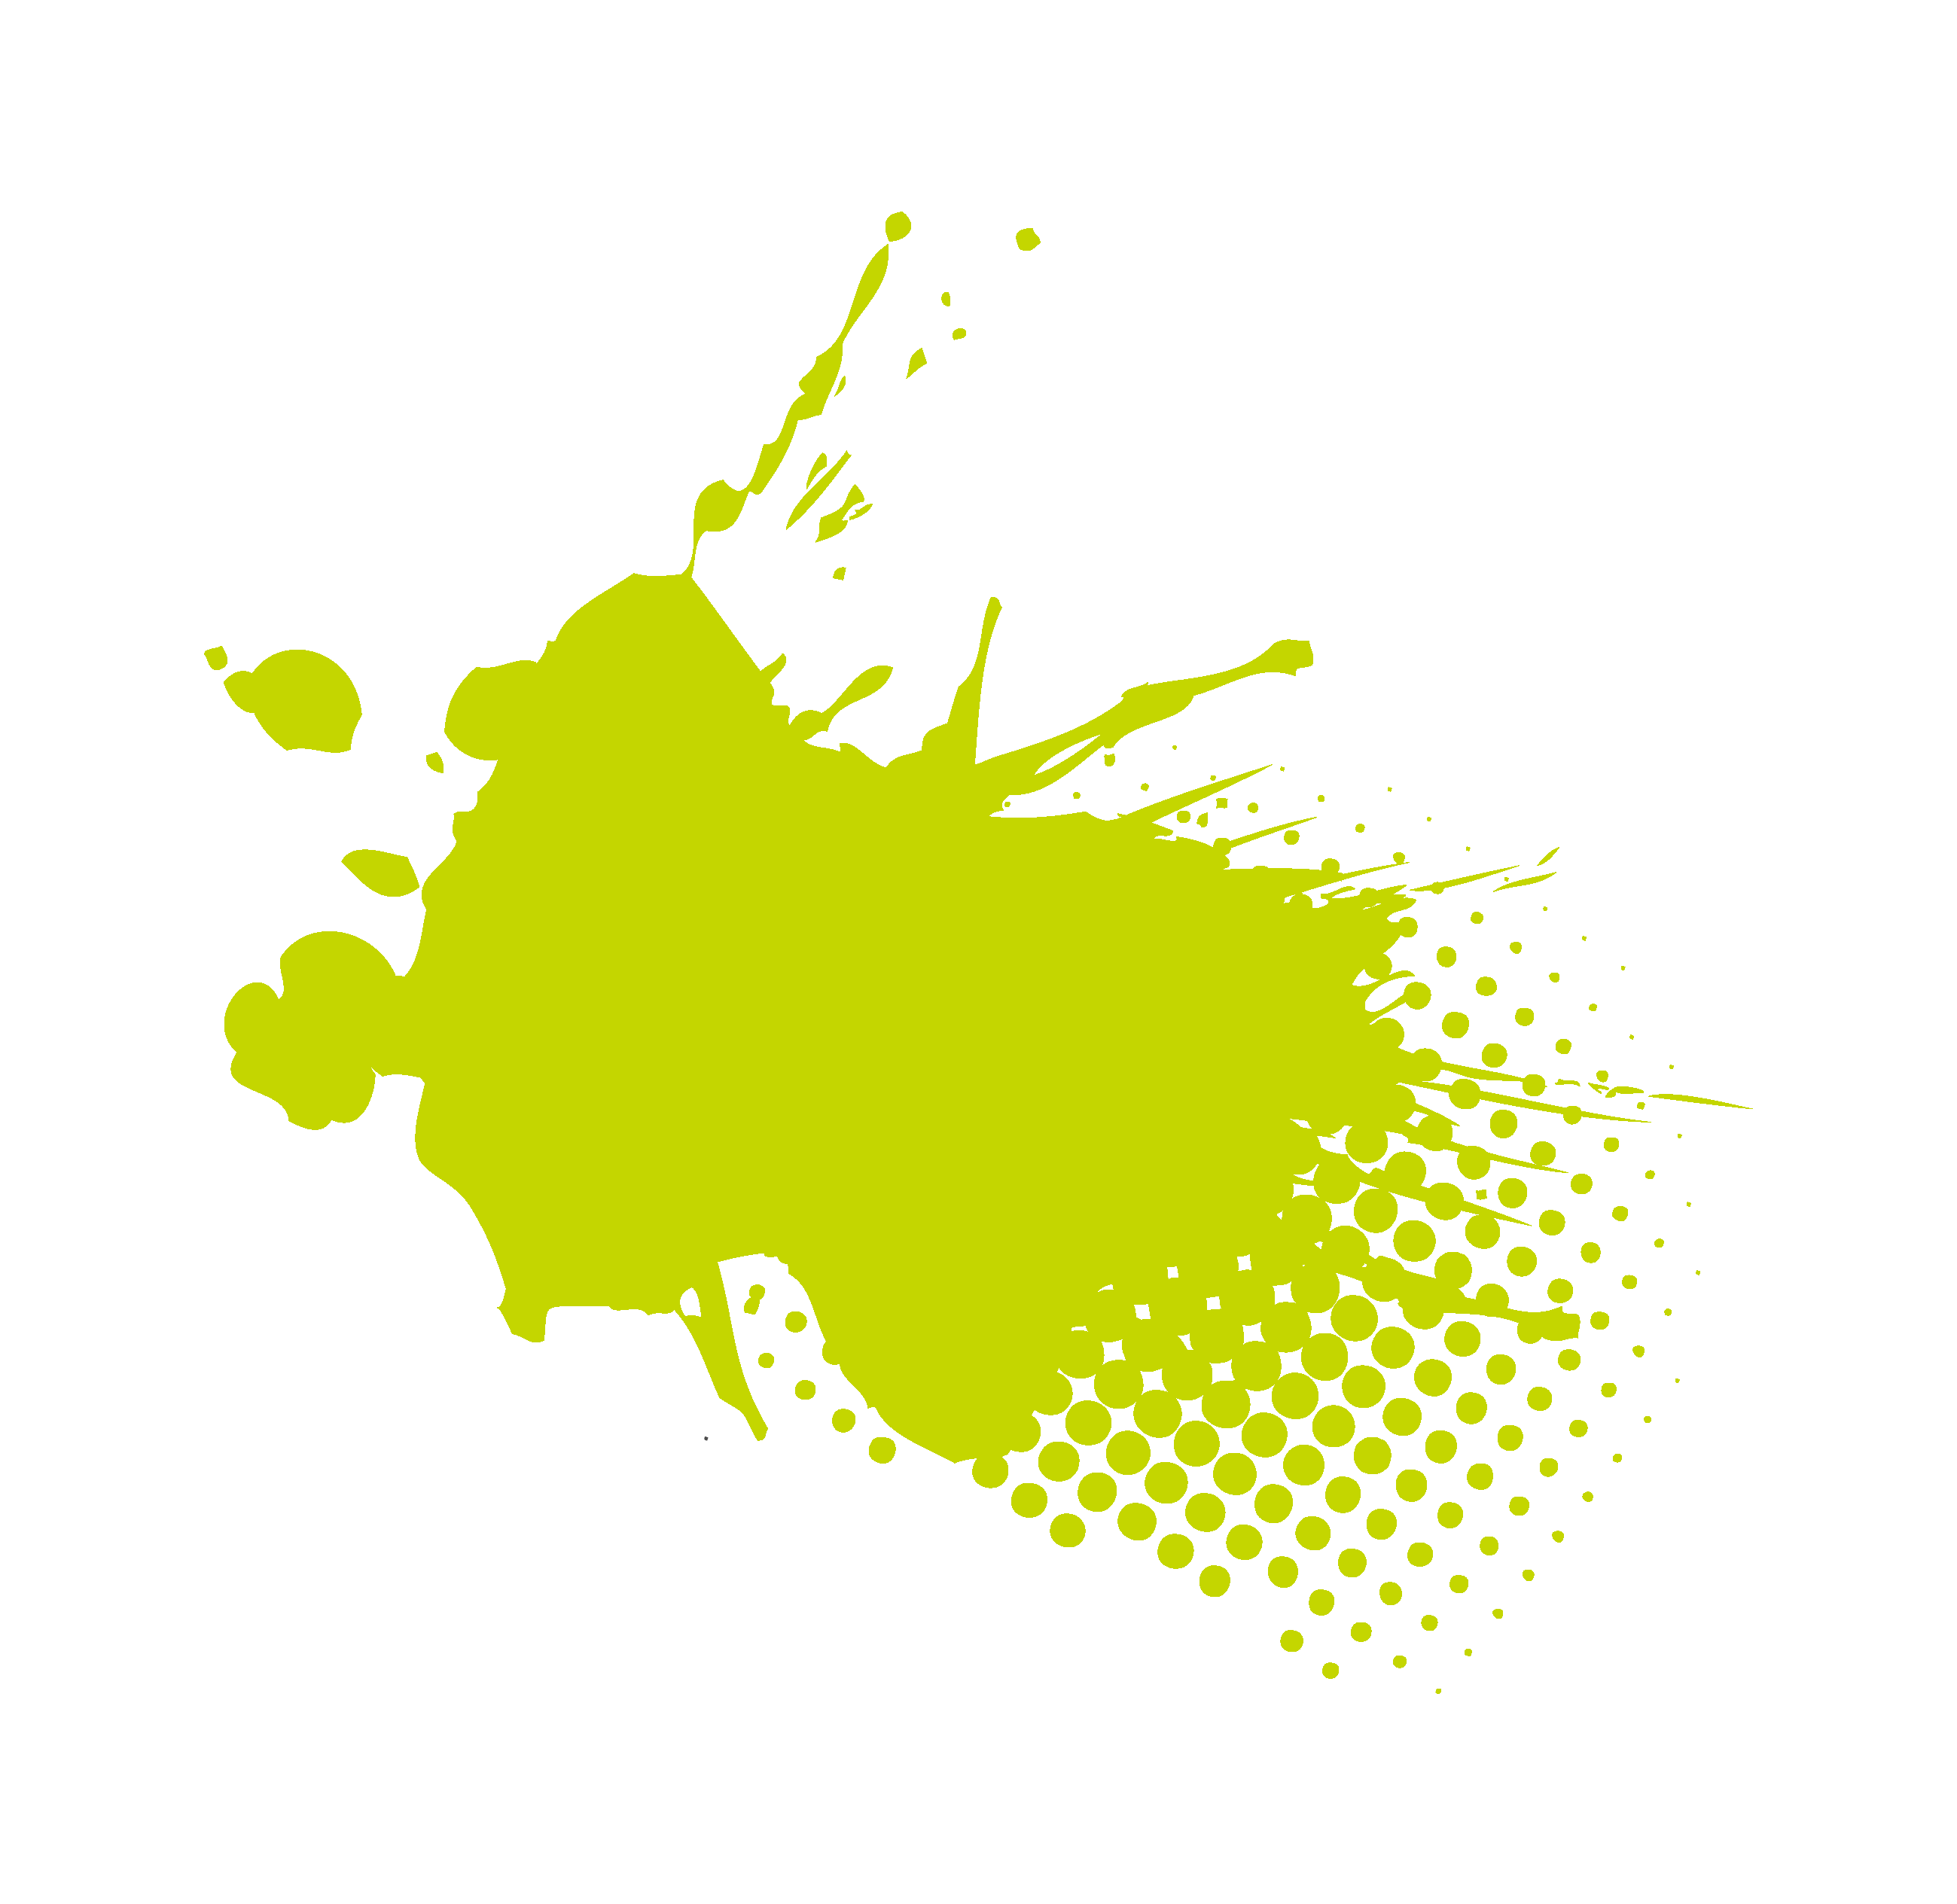 Image showing a green decorative paint splat